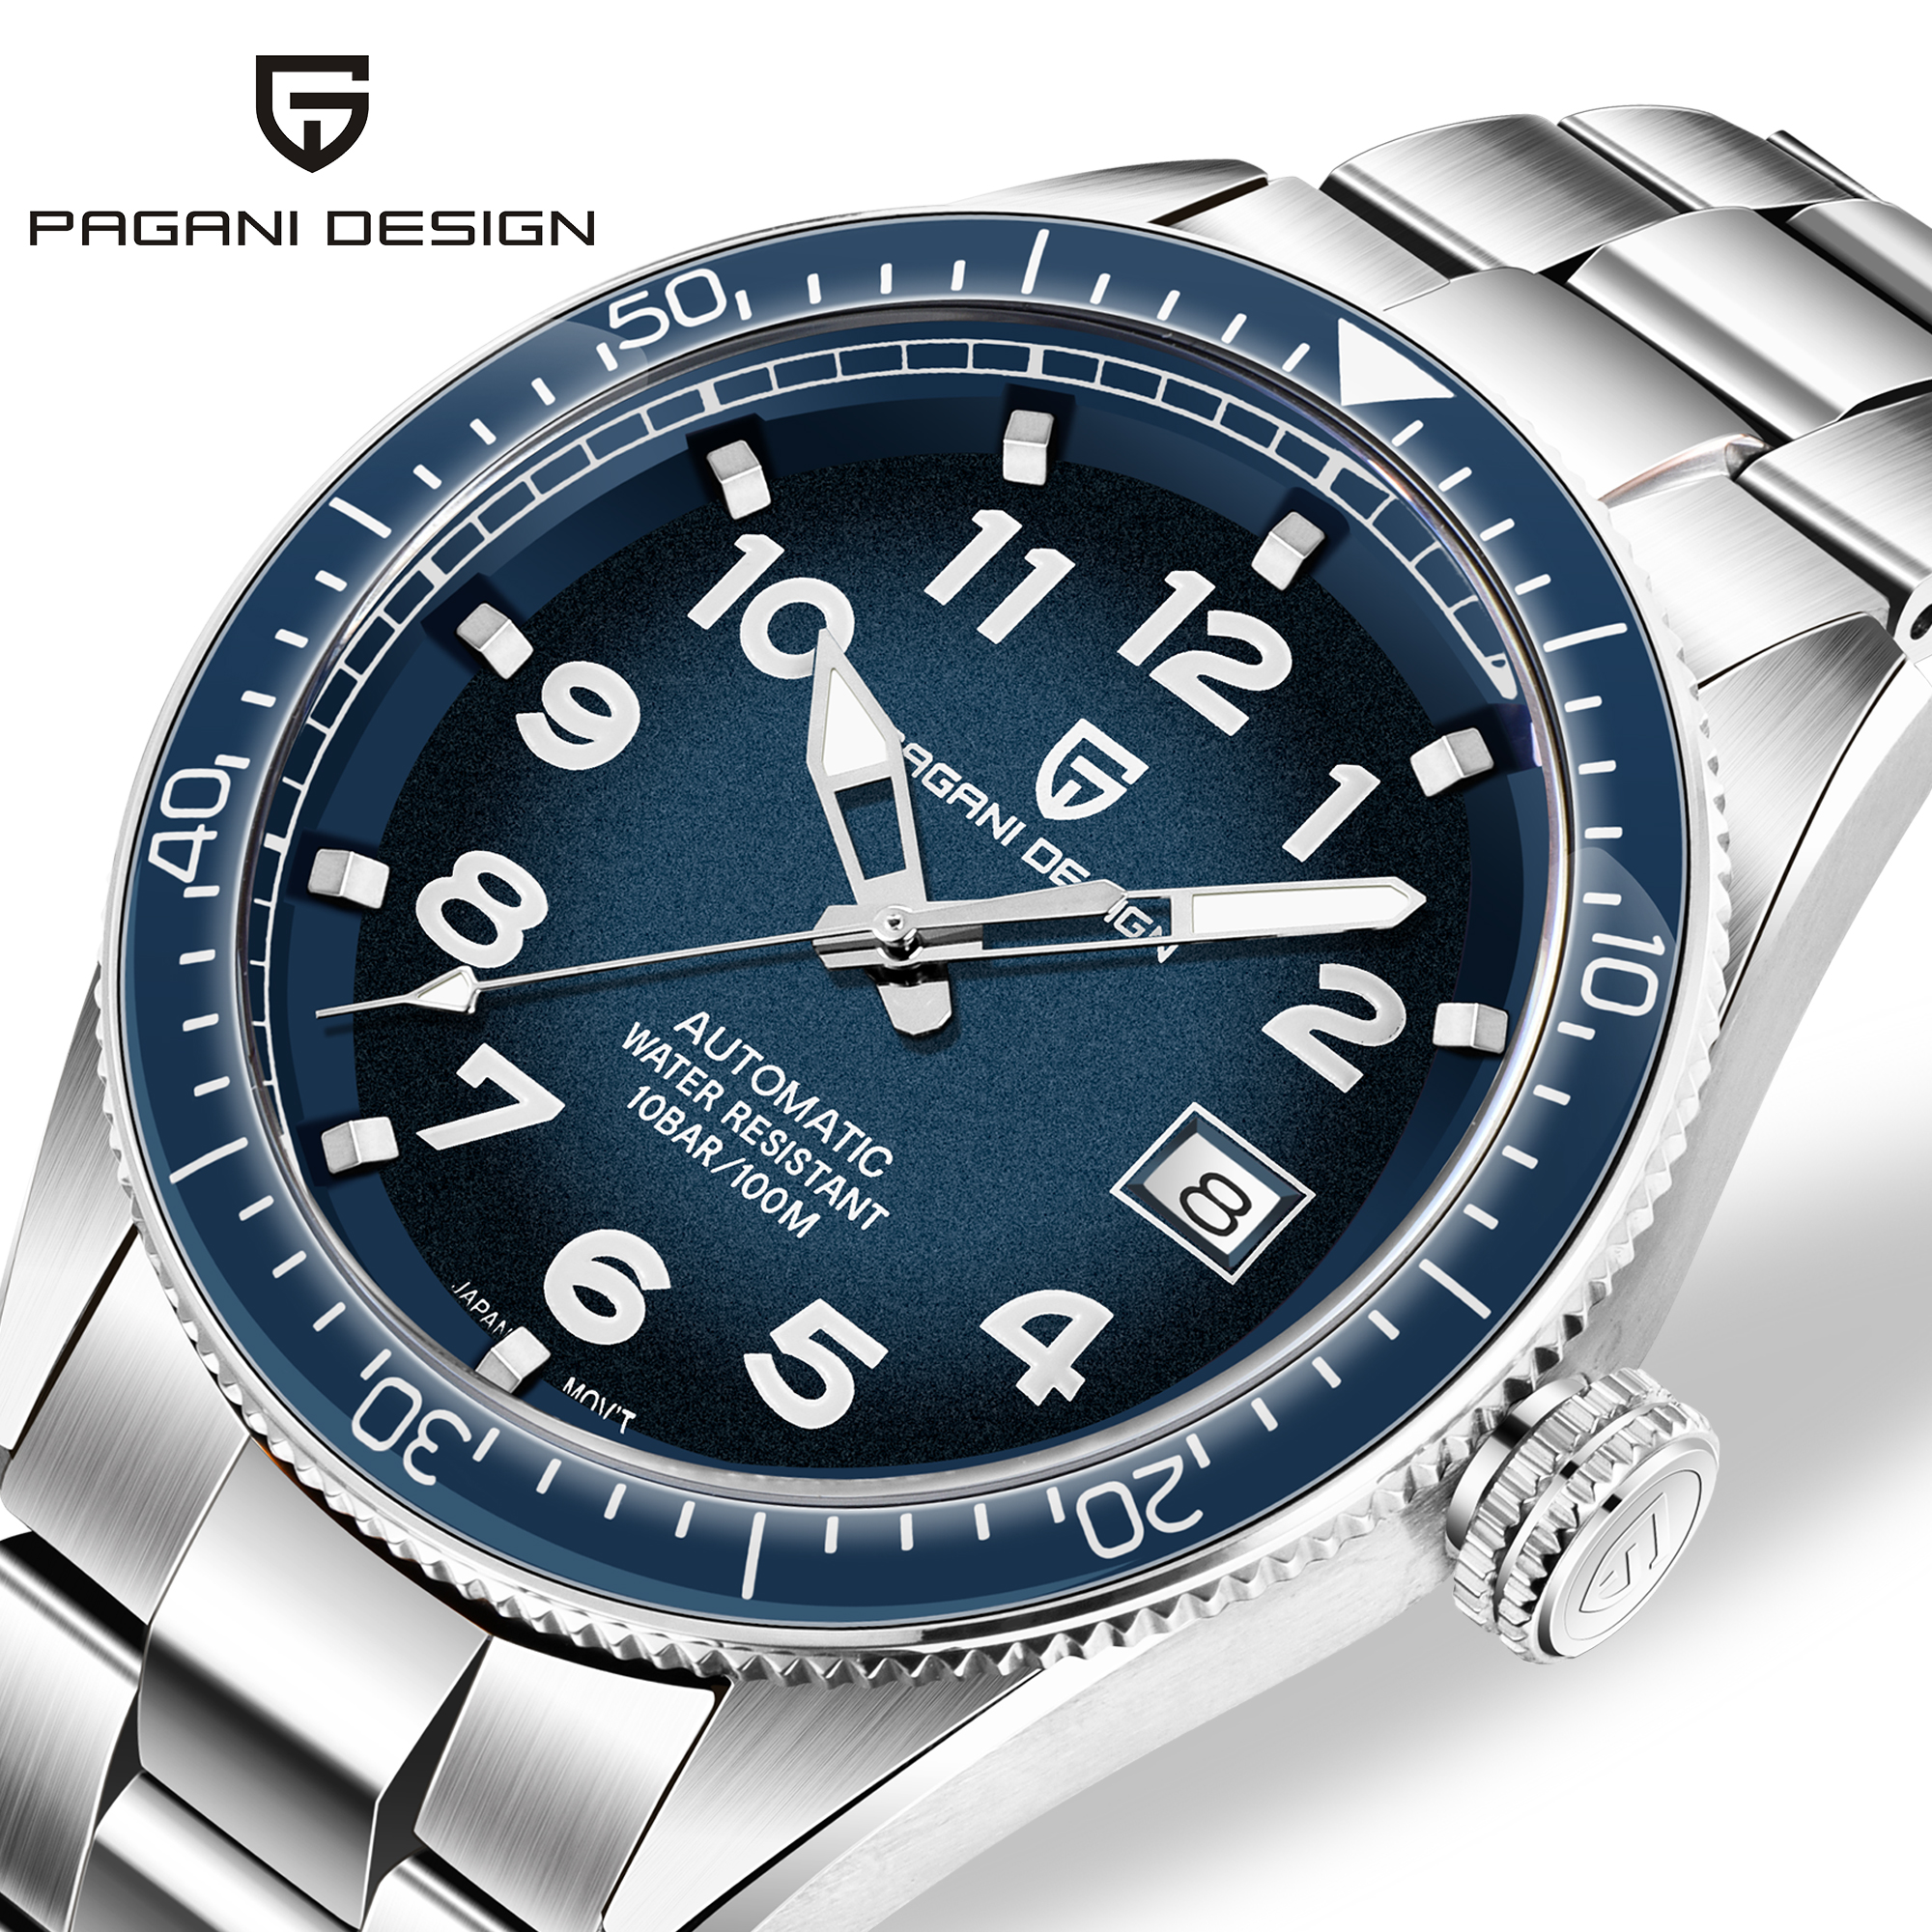 Waterproof Watch Mechanical-Watch Business Pagani-Design Men Automatic Luxury Brand Relojes title=